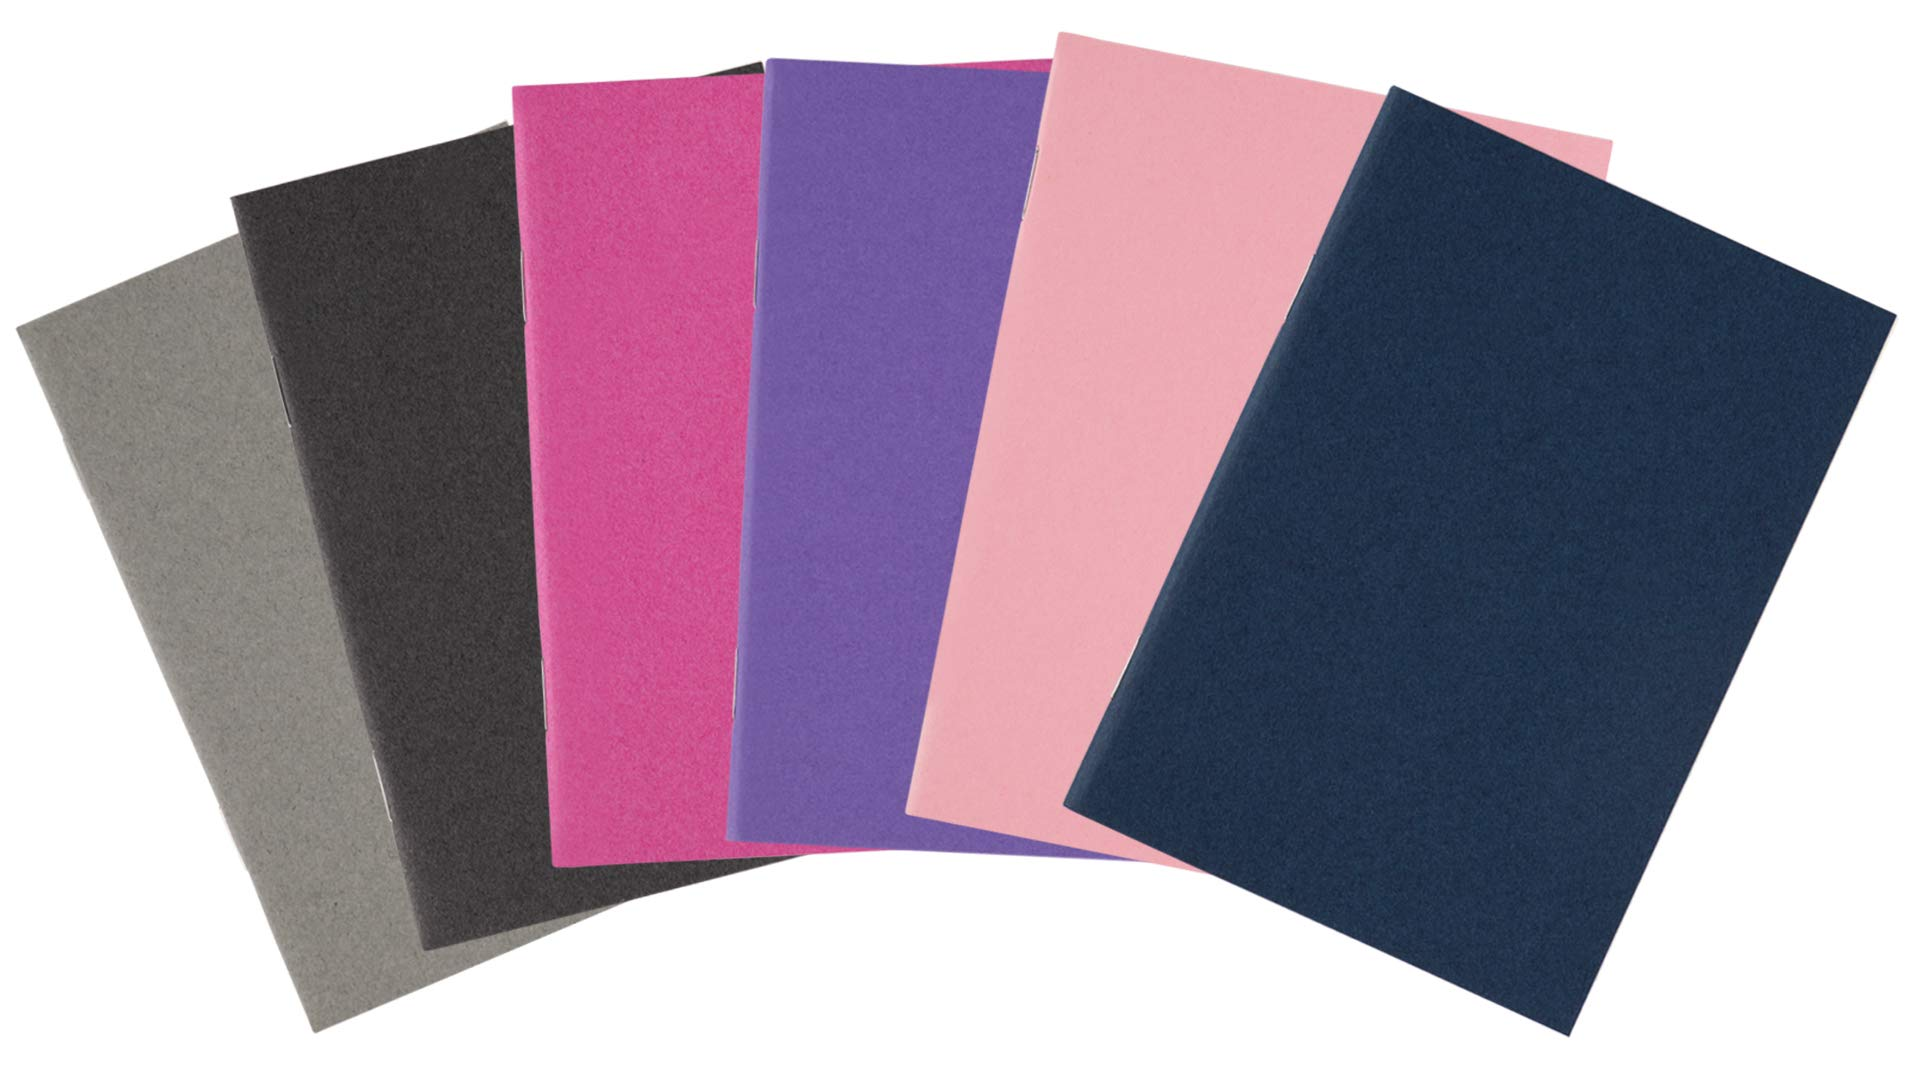 Pocket Notebook - 24-Pack Lined Notebook Journals, Mini Blank Book Travel Journal for Travelers, Diary, Notes - Soft Cover, 24 Sheets, 6 Assorted Colors, 3.5 x 5 Inches by Paper Junkie